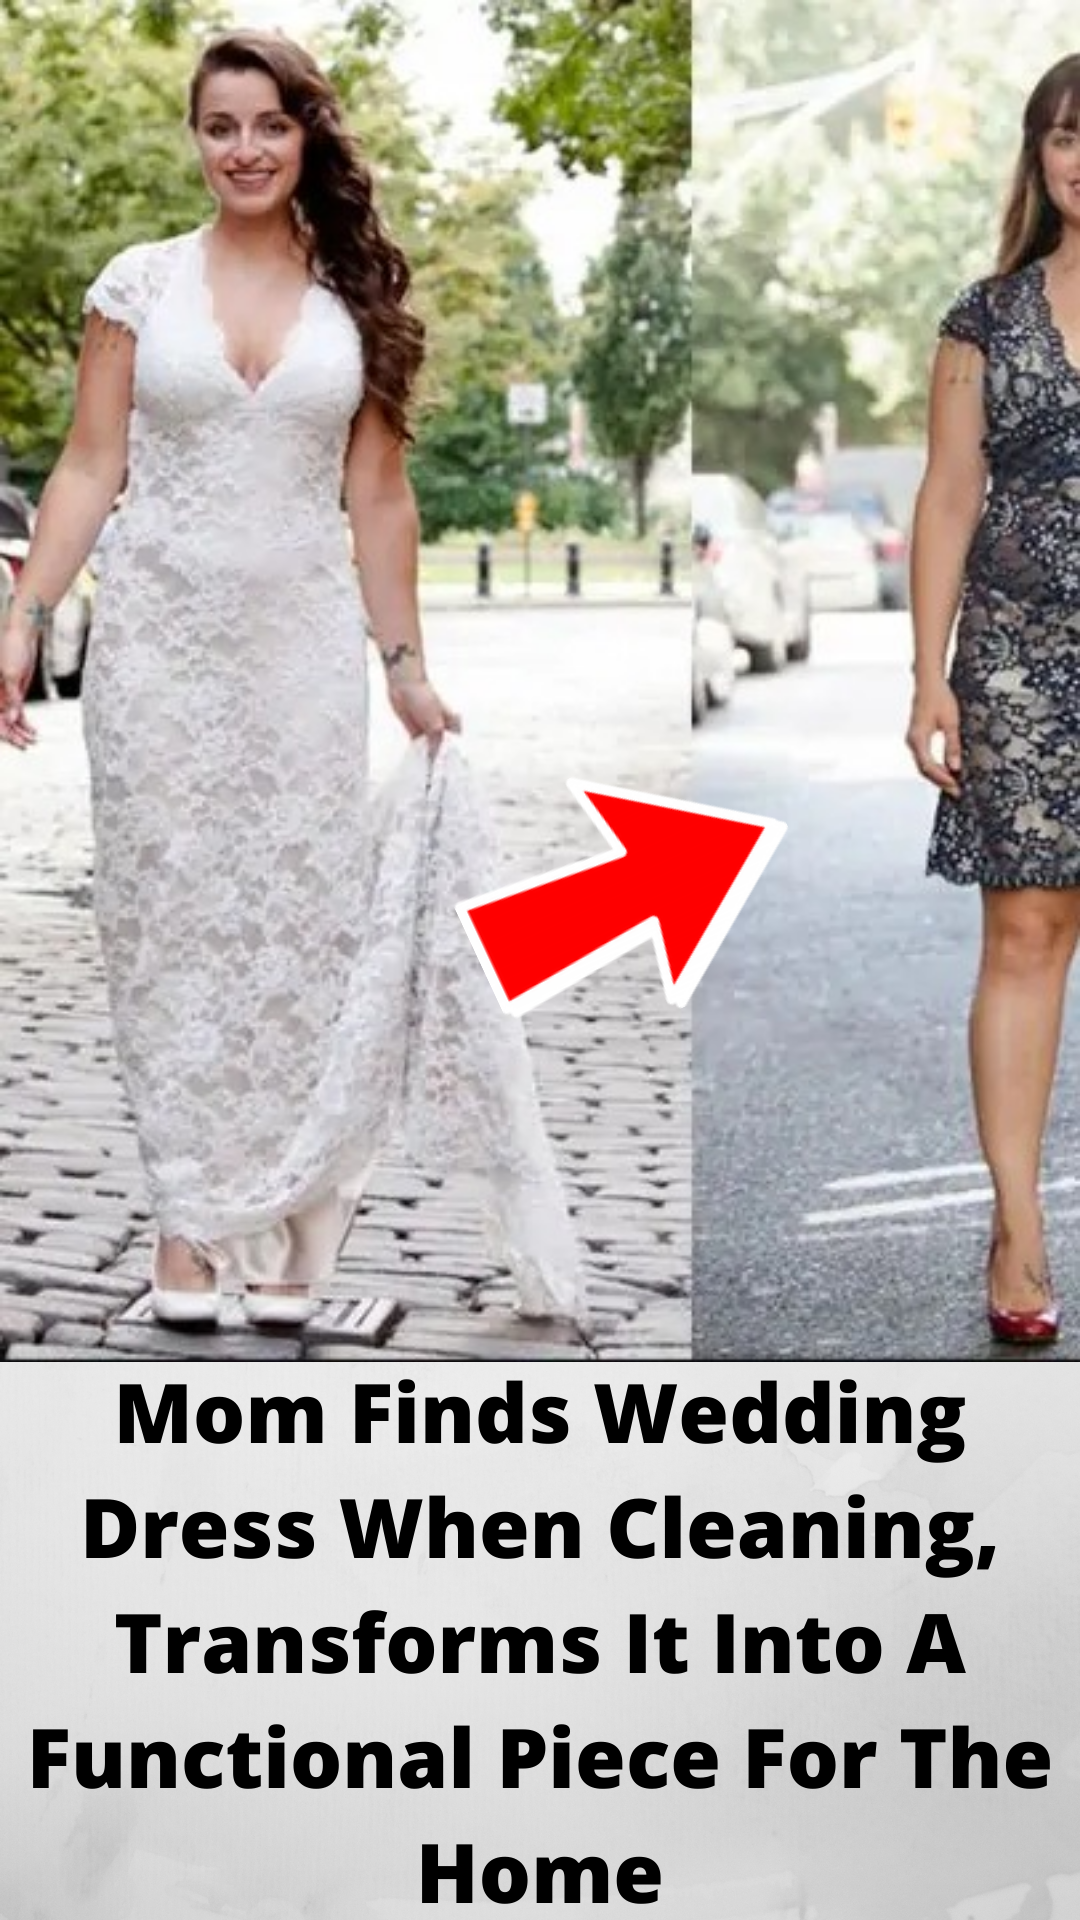 Mom Finds Wedding Dress When Cleaning Transforms It Into A Functional Piece For The Home In 2020 Find Wedding Dress Funny Prank Videos Crazy Funny Memes